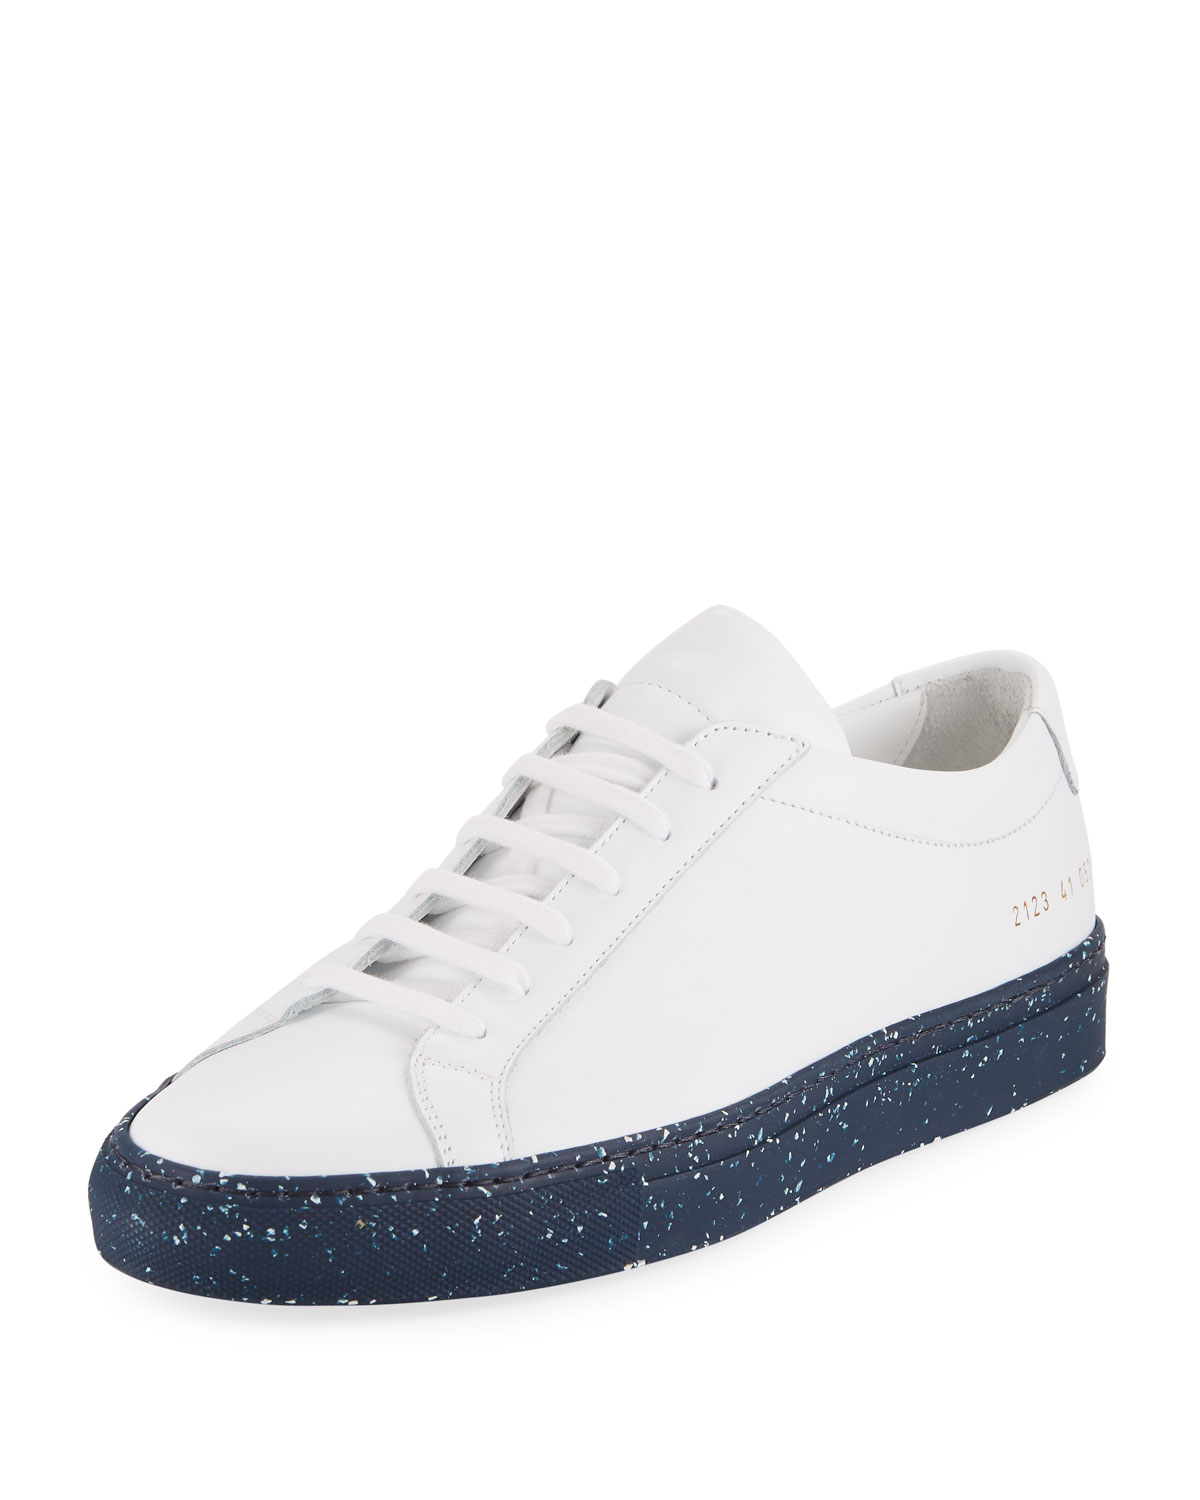 4d0ce2115ac19 Common Projects Men's Achilles Leather Low-Top Sneakers with Confetti Sole